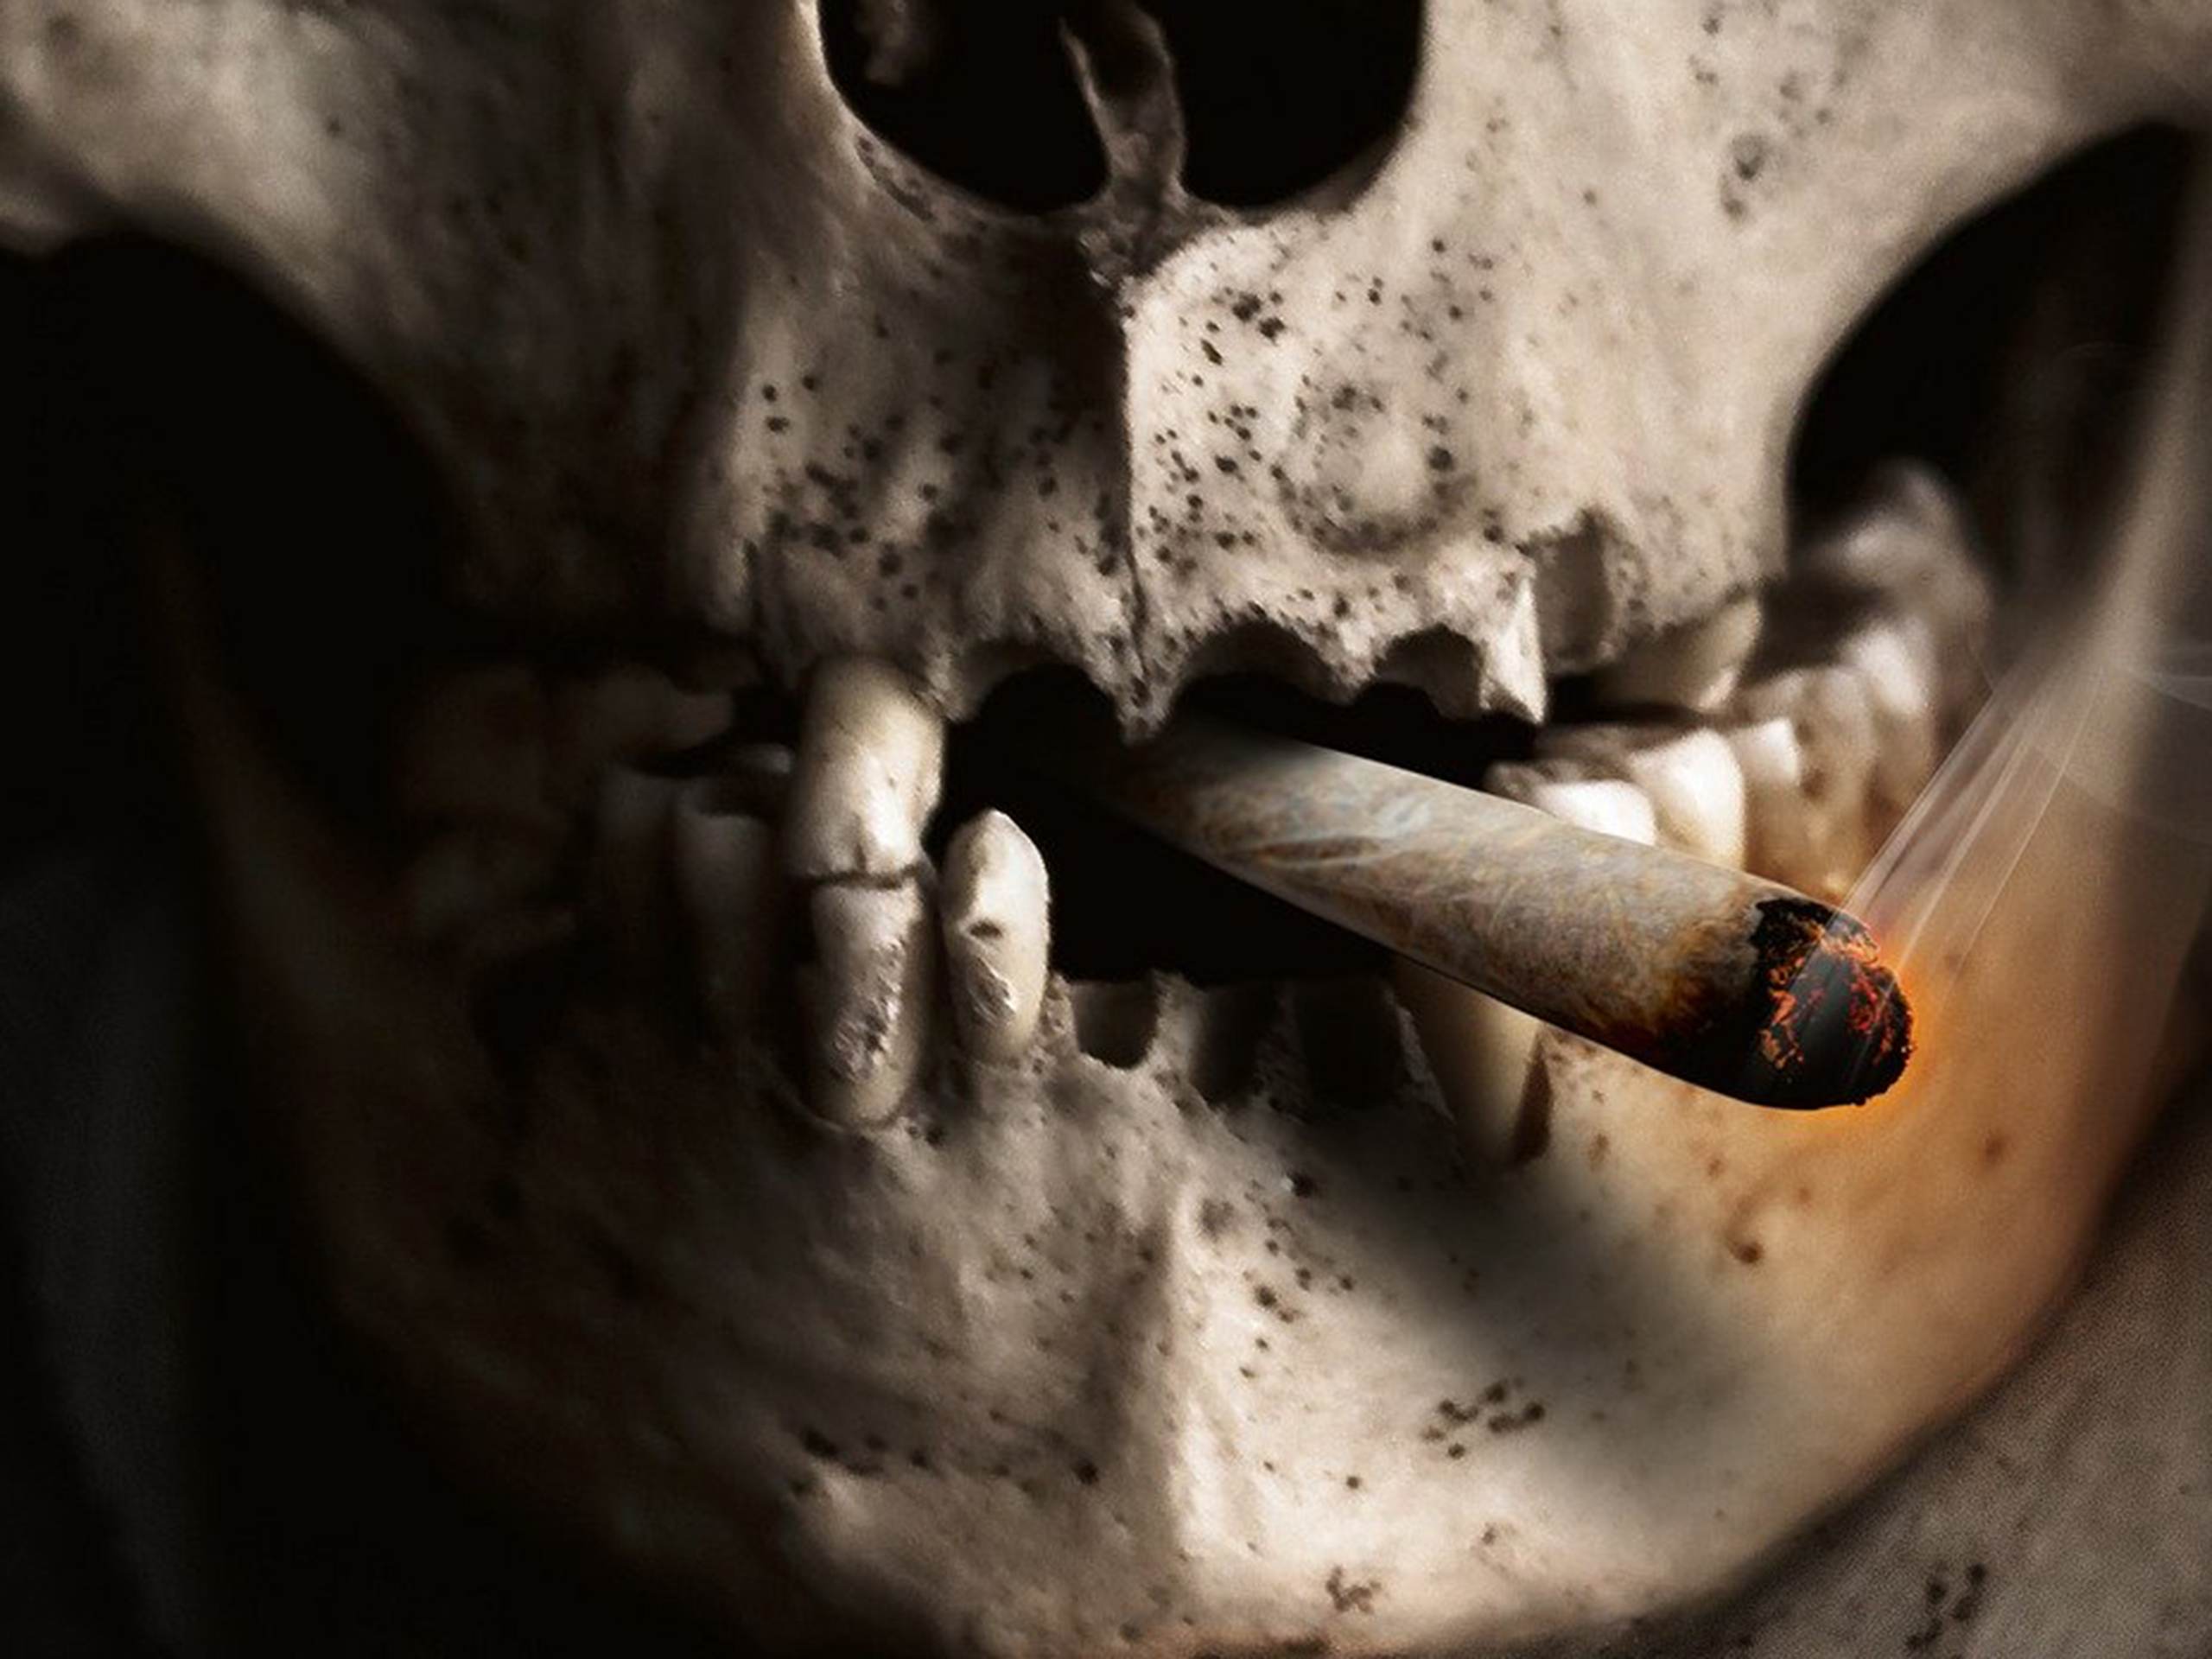 Tobacco, public health and the battle of Waterloo